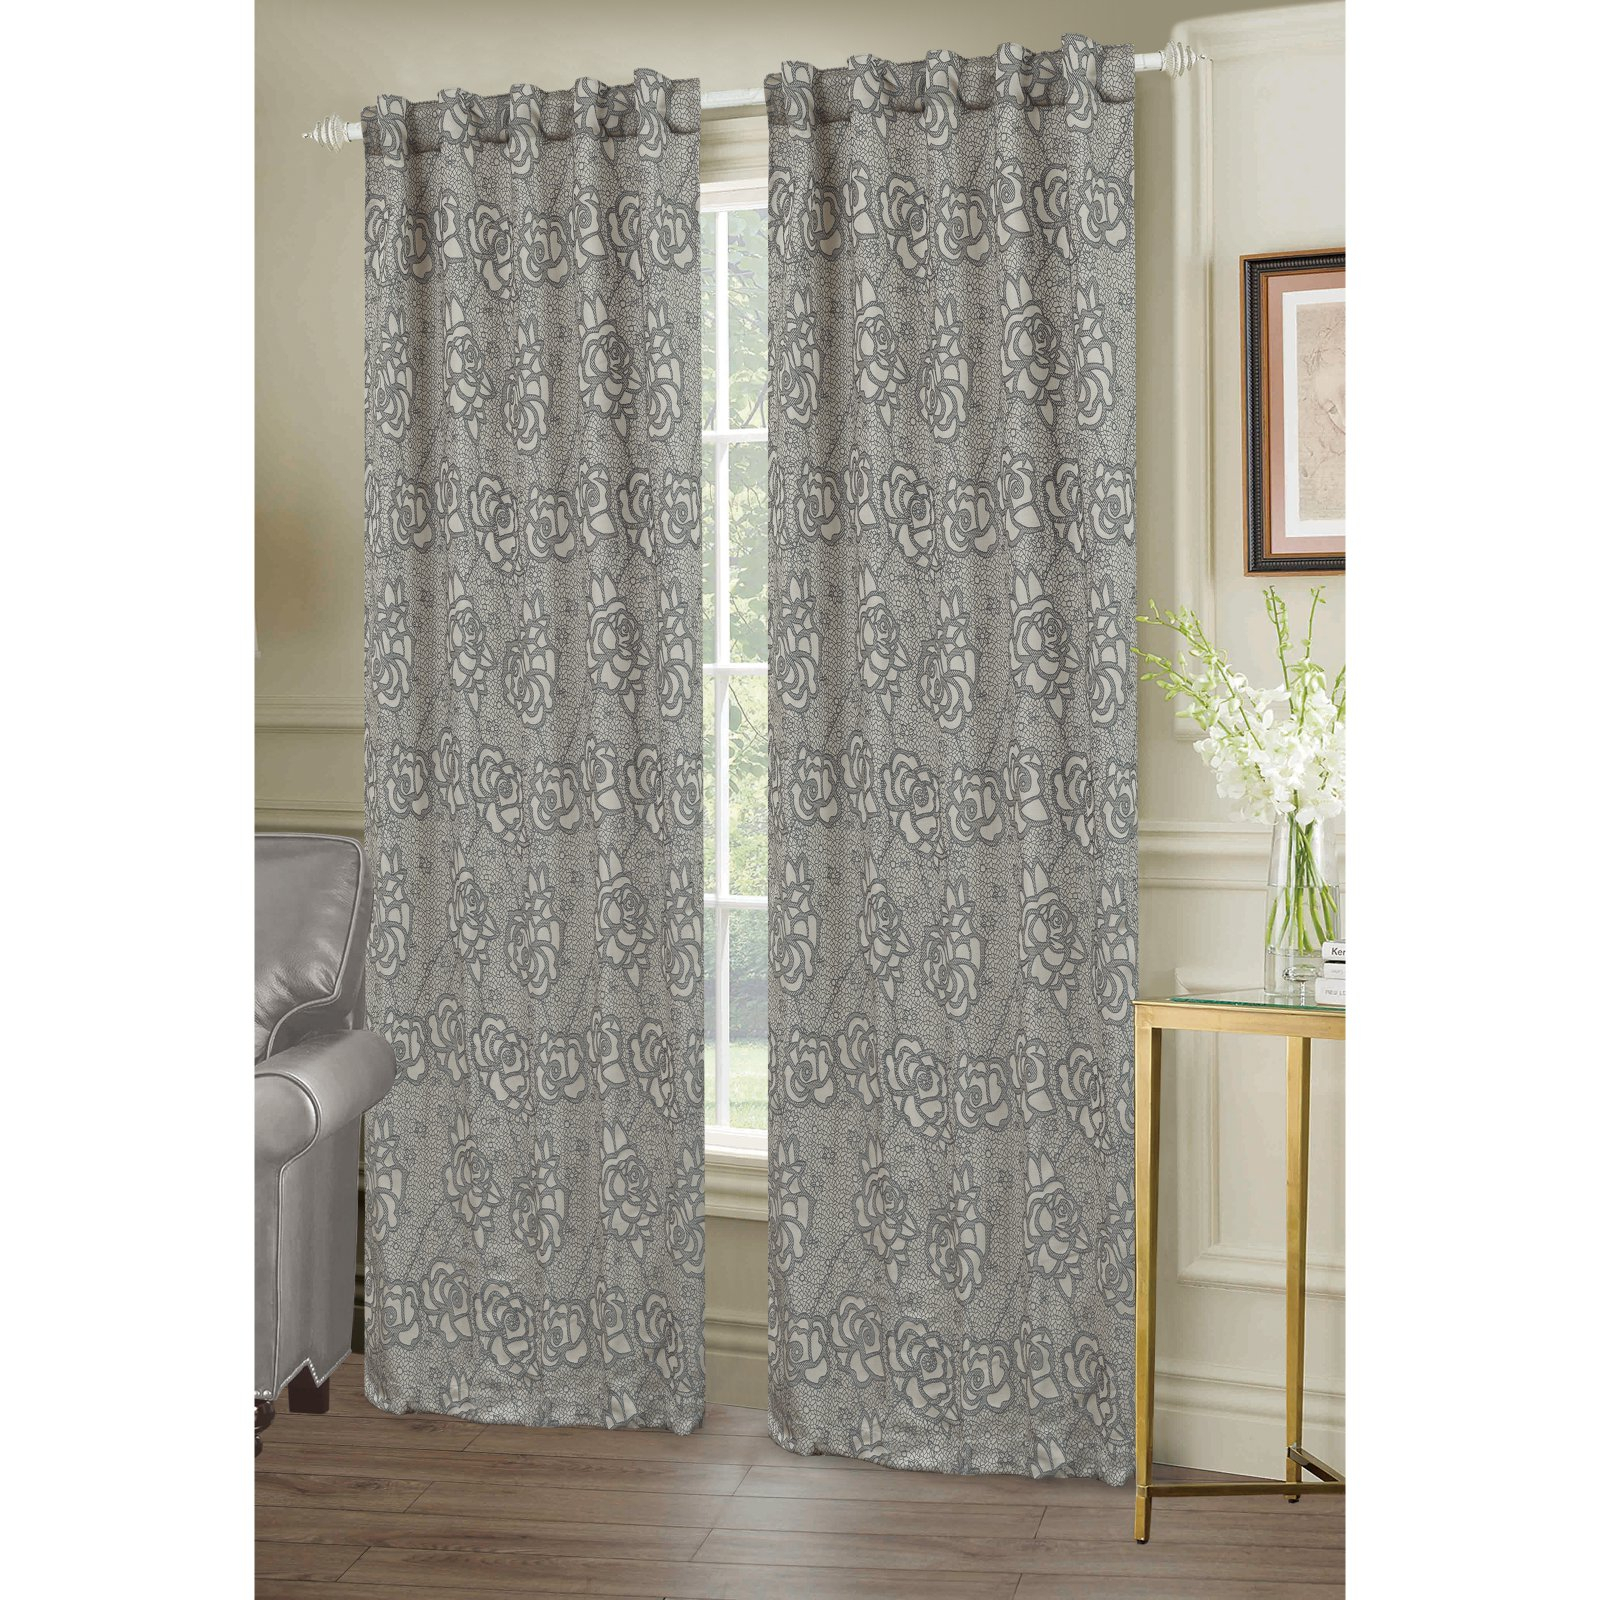 Dainty Home Lace Room Darkening Window Curtain Panel Pair Pertaining To Room Darkening Window Curtain Panel Pairs (View 17 of 20)